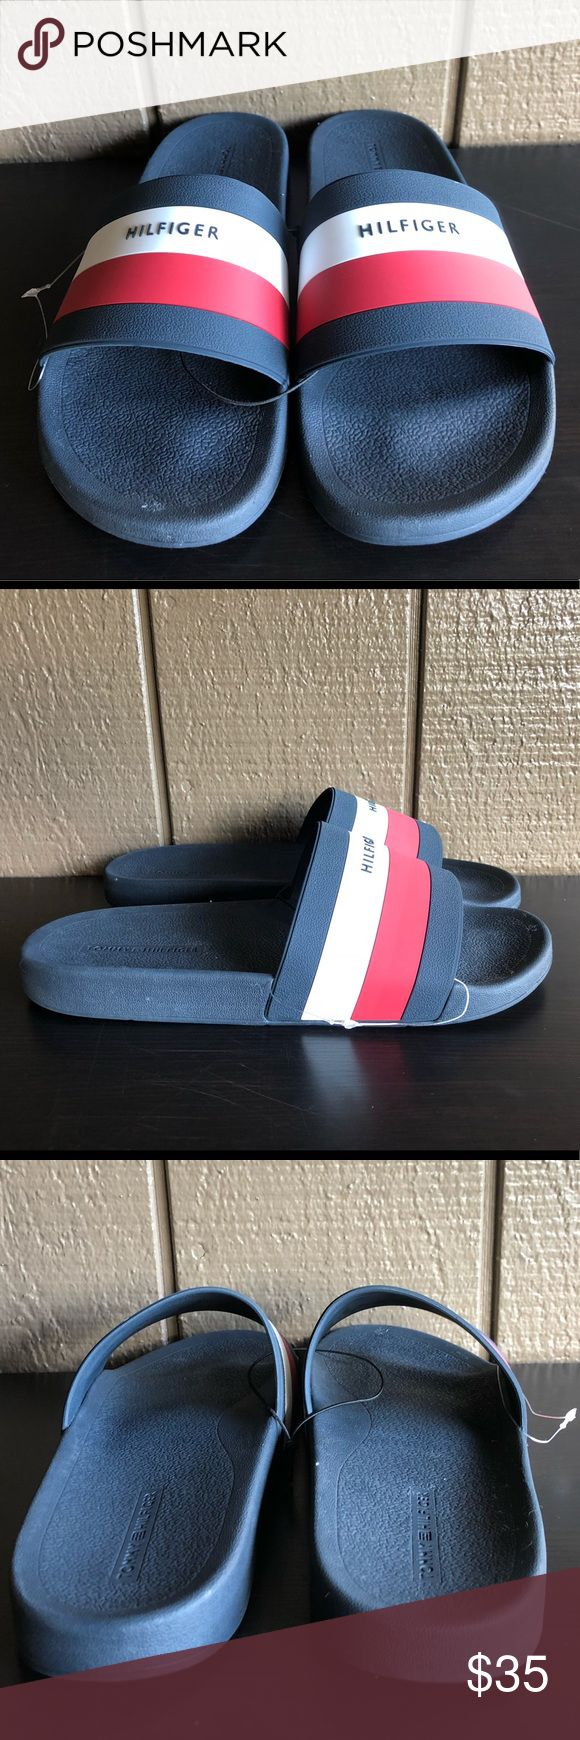 Tommy Hilfiger Men's Sandals EARTHY Blue/Red Tommy Hilfiger Men's Sandals Slides EARTHY Block Logo Spell Out Blue Red   Brand : Tommy Hilfiger   Style Code : EARTHY-R   Color : Dark Blue/Red/White   HILFIGER across each strap   Slip-on construction.   Open-toe.   Synthetic lining.   Lightly padded footbed.   Man-made outsole.   BRAND NEW Tommy Hilfiger Shoes Sandals & Flip-Flops